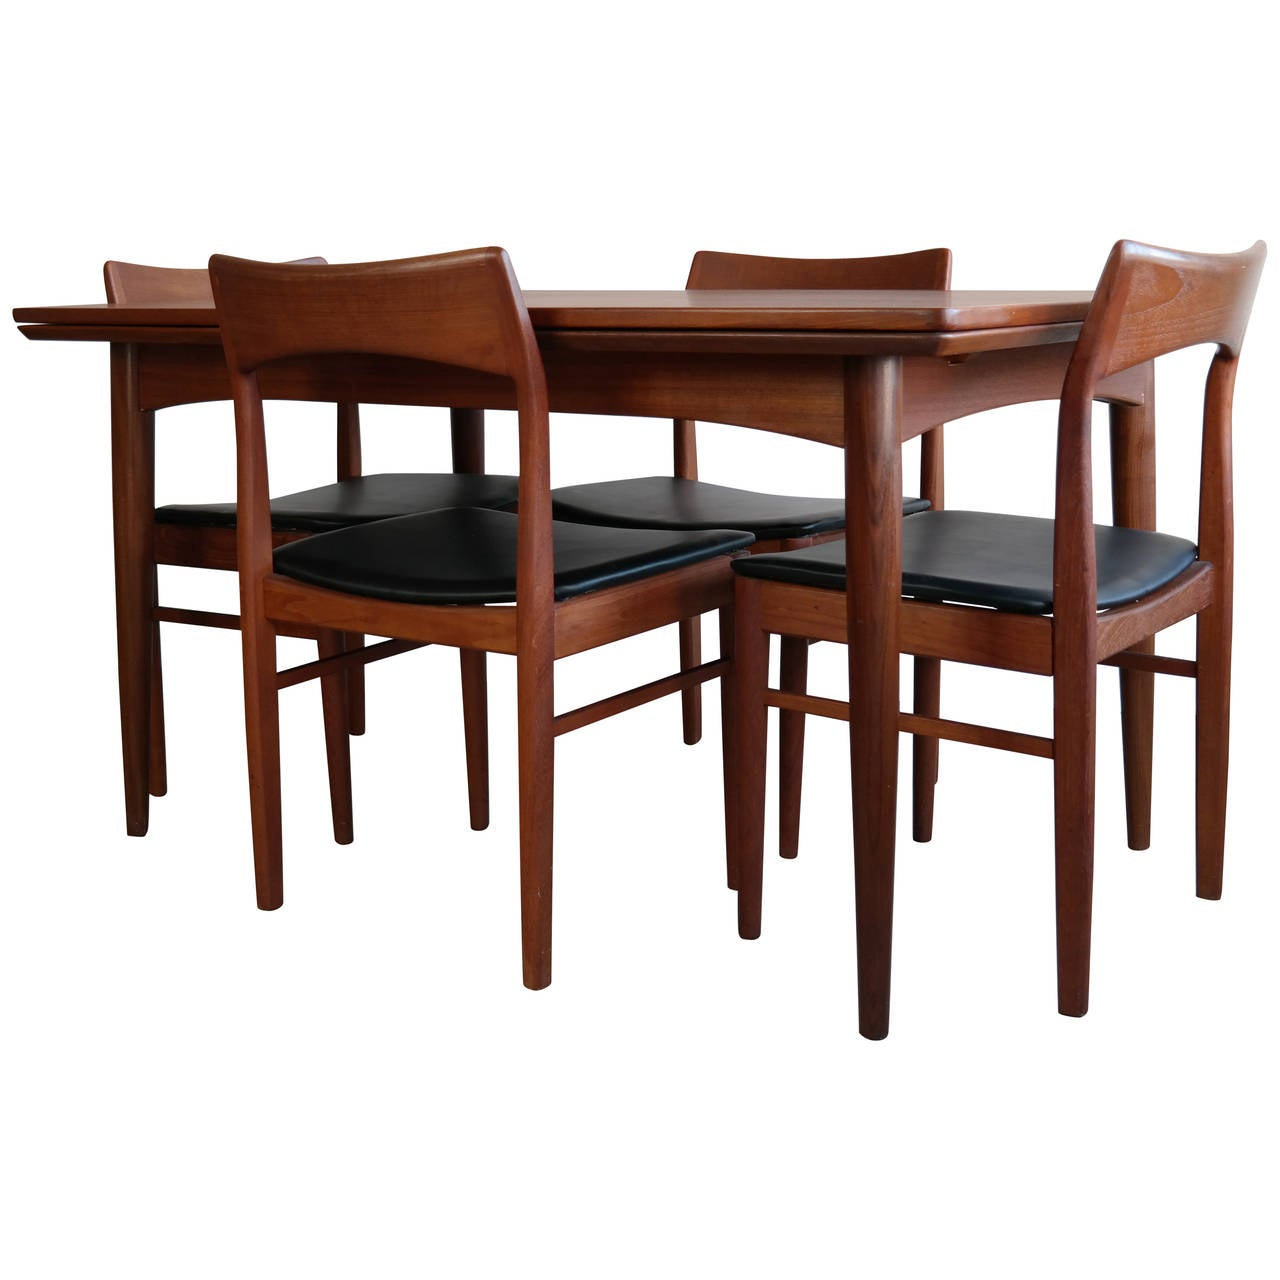 Danish modern dining set in teak at 1stdibs for Dining room tables 1940s